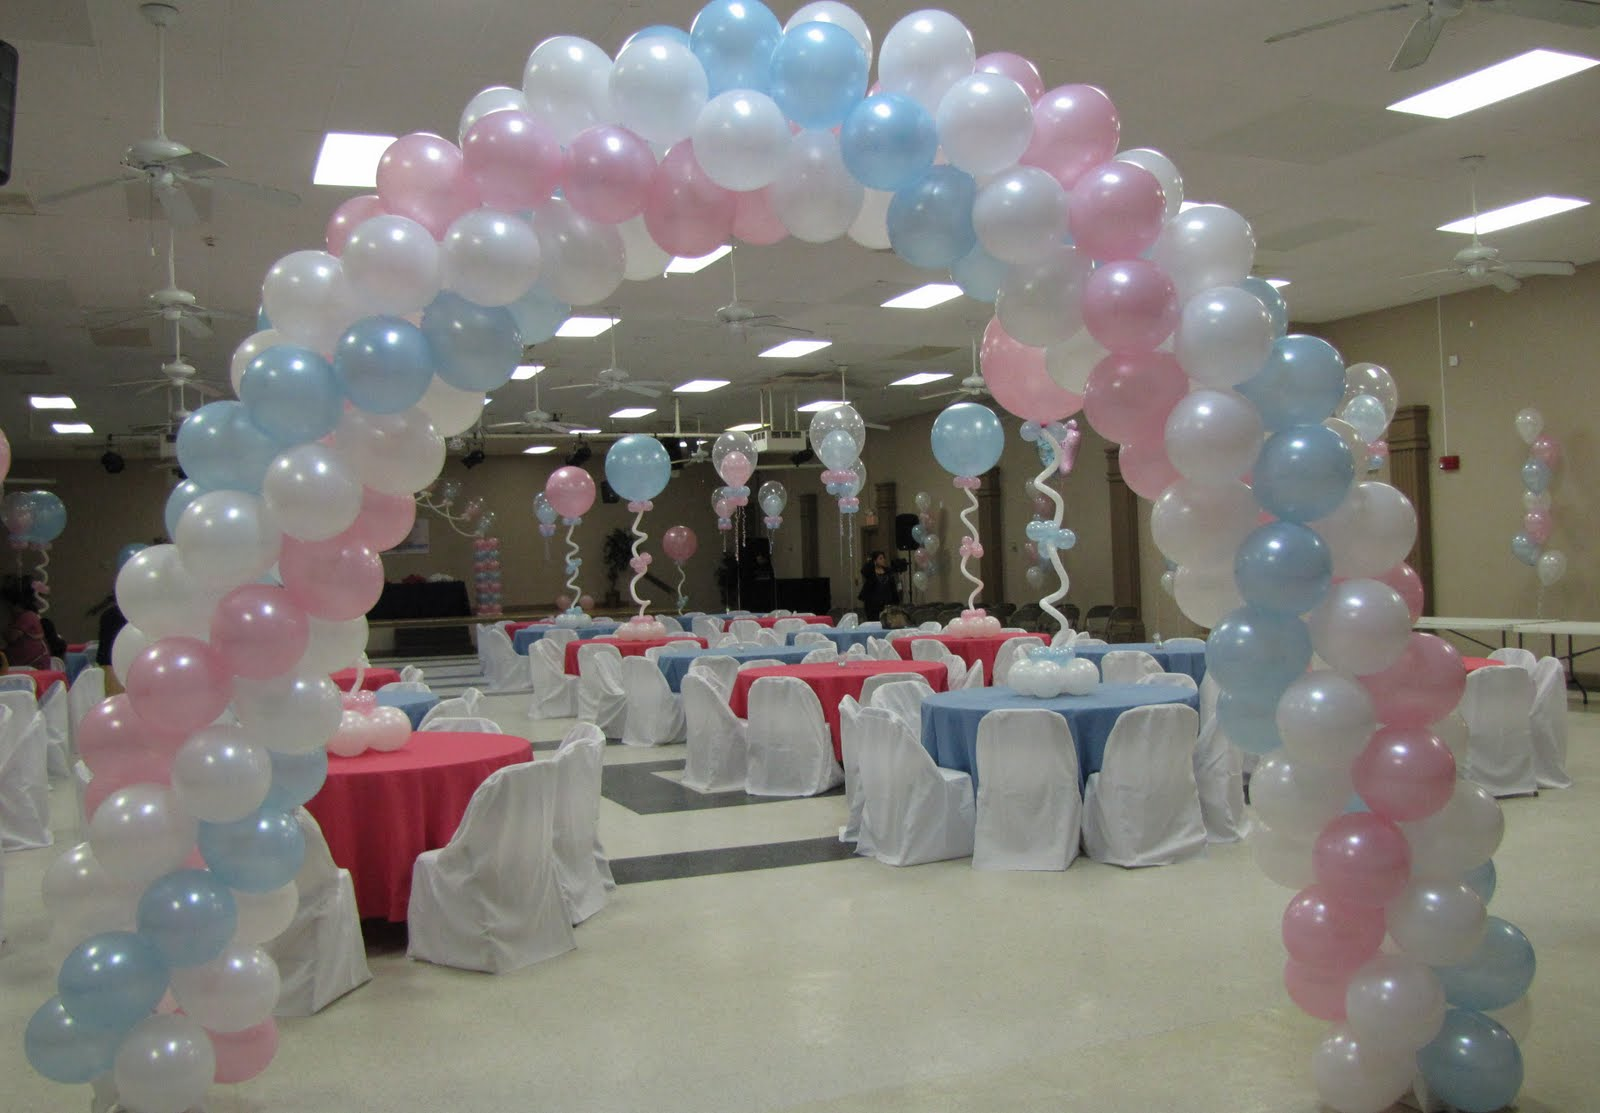 balloons decorations for baby shower party favors ideas ForBaby Shower Decoration Photos